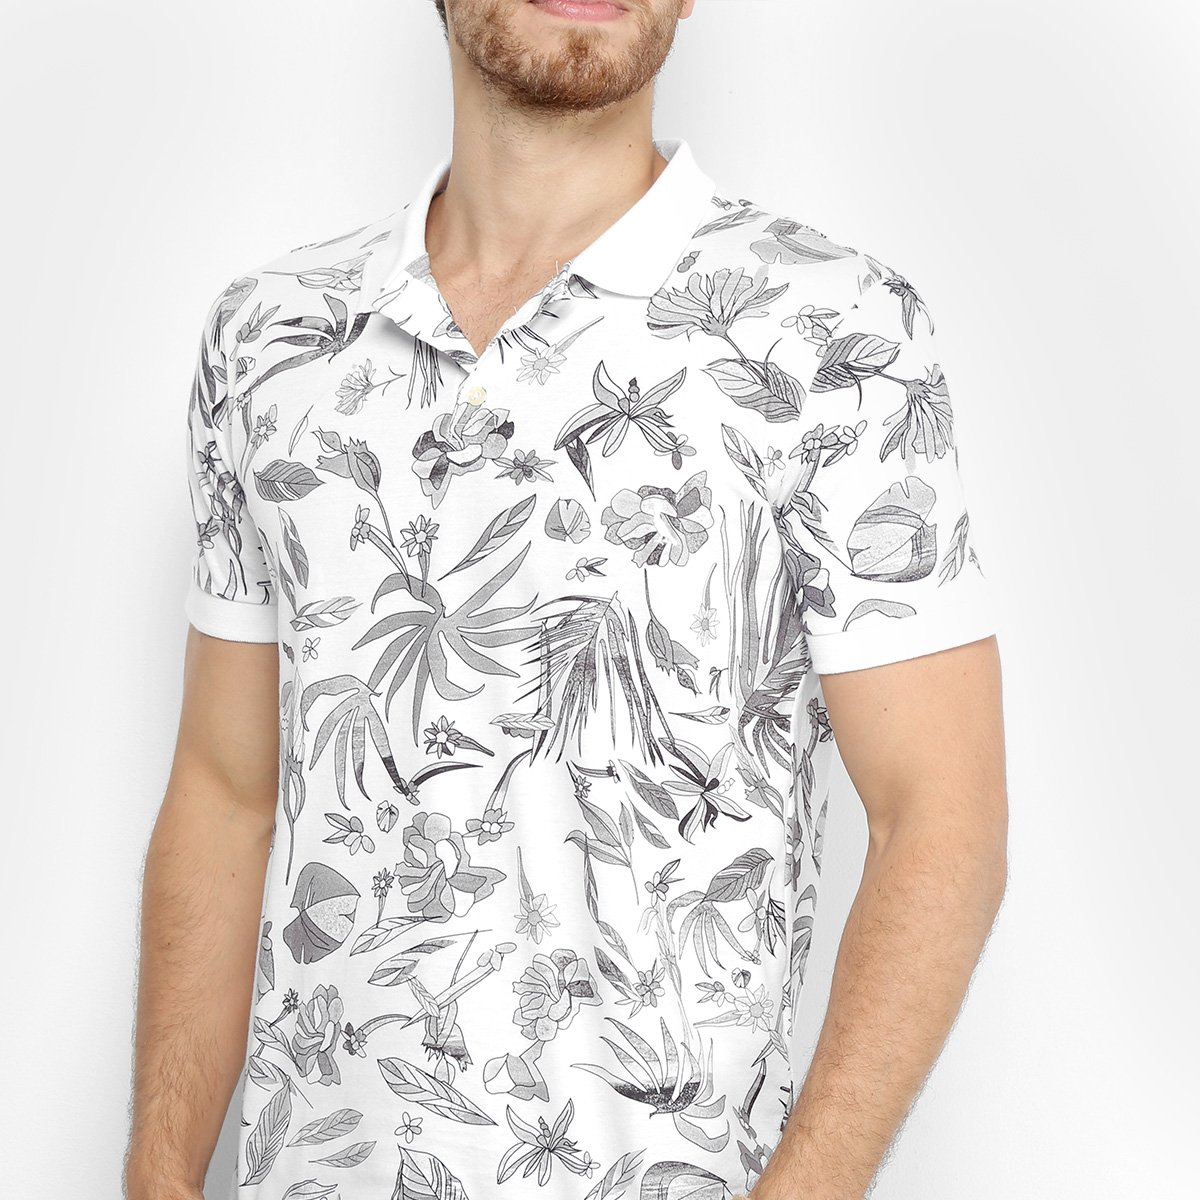 794a5922a7 Camisa Polo Reserva Full Print Floral Carnaval Masculina - Compre ...